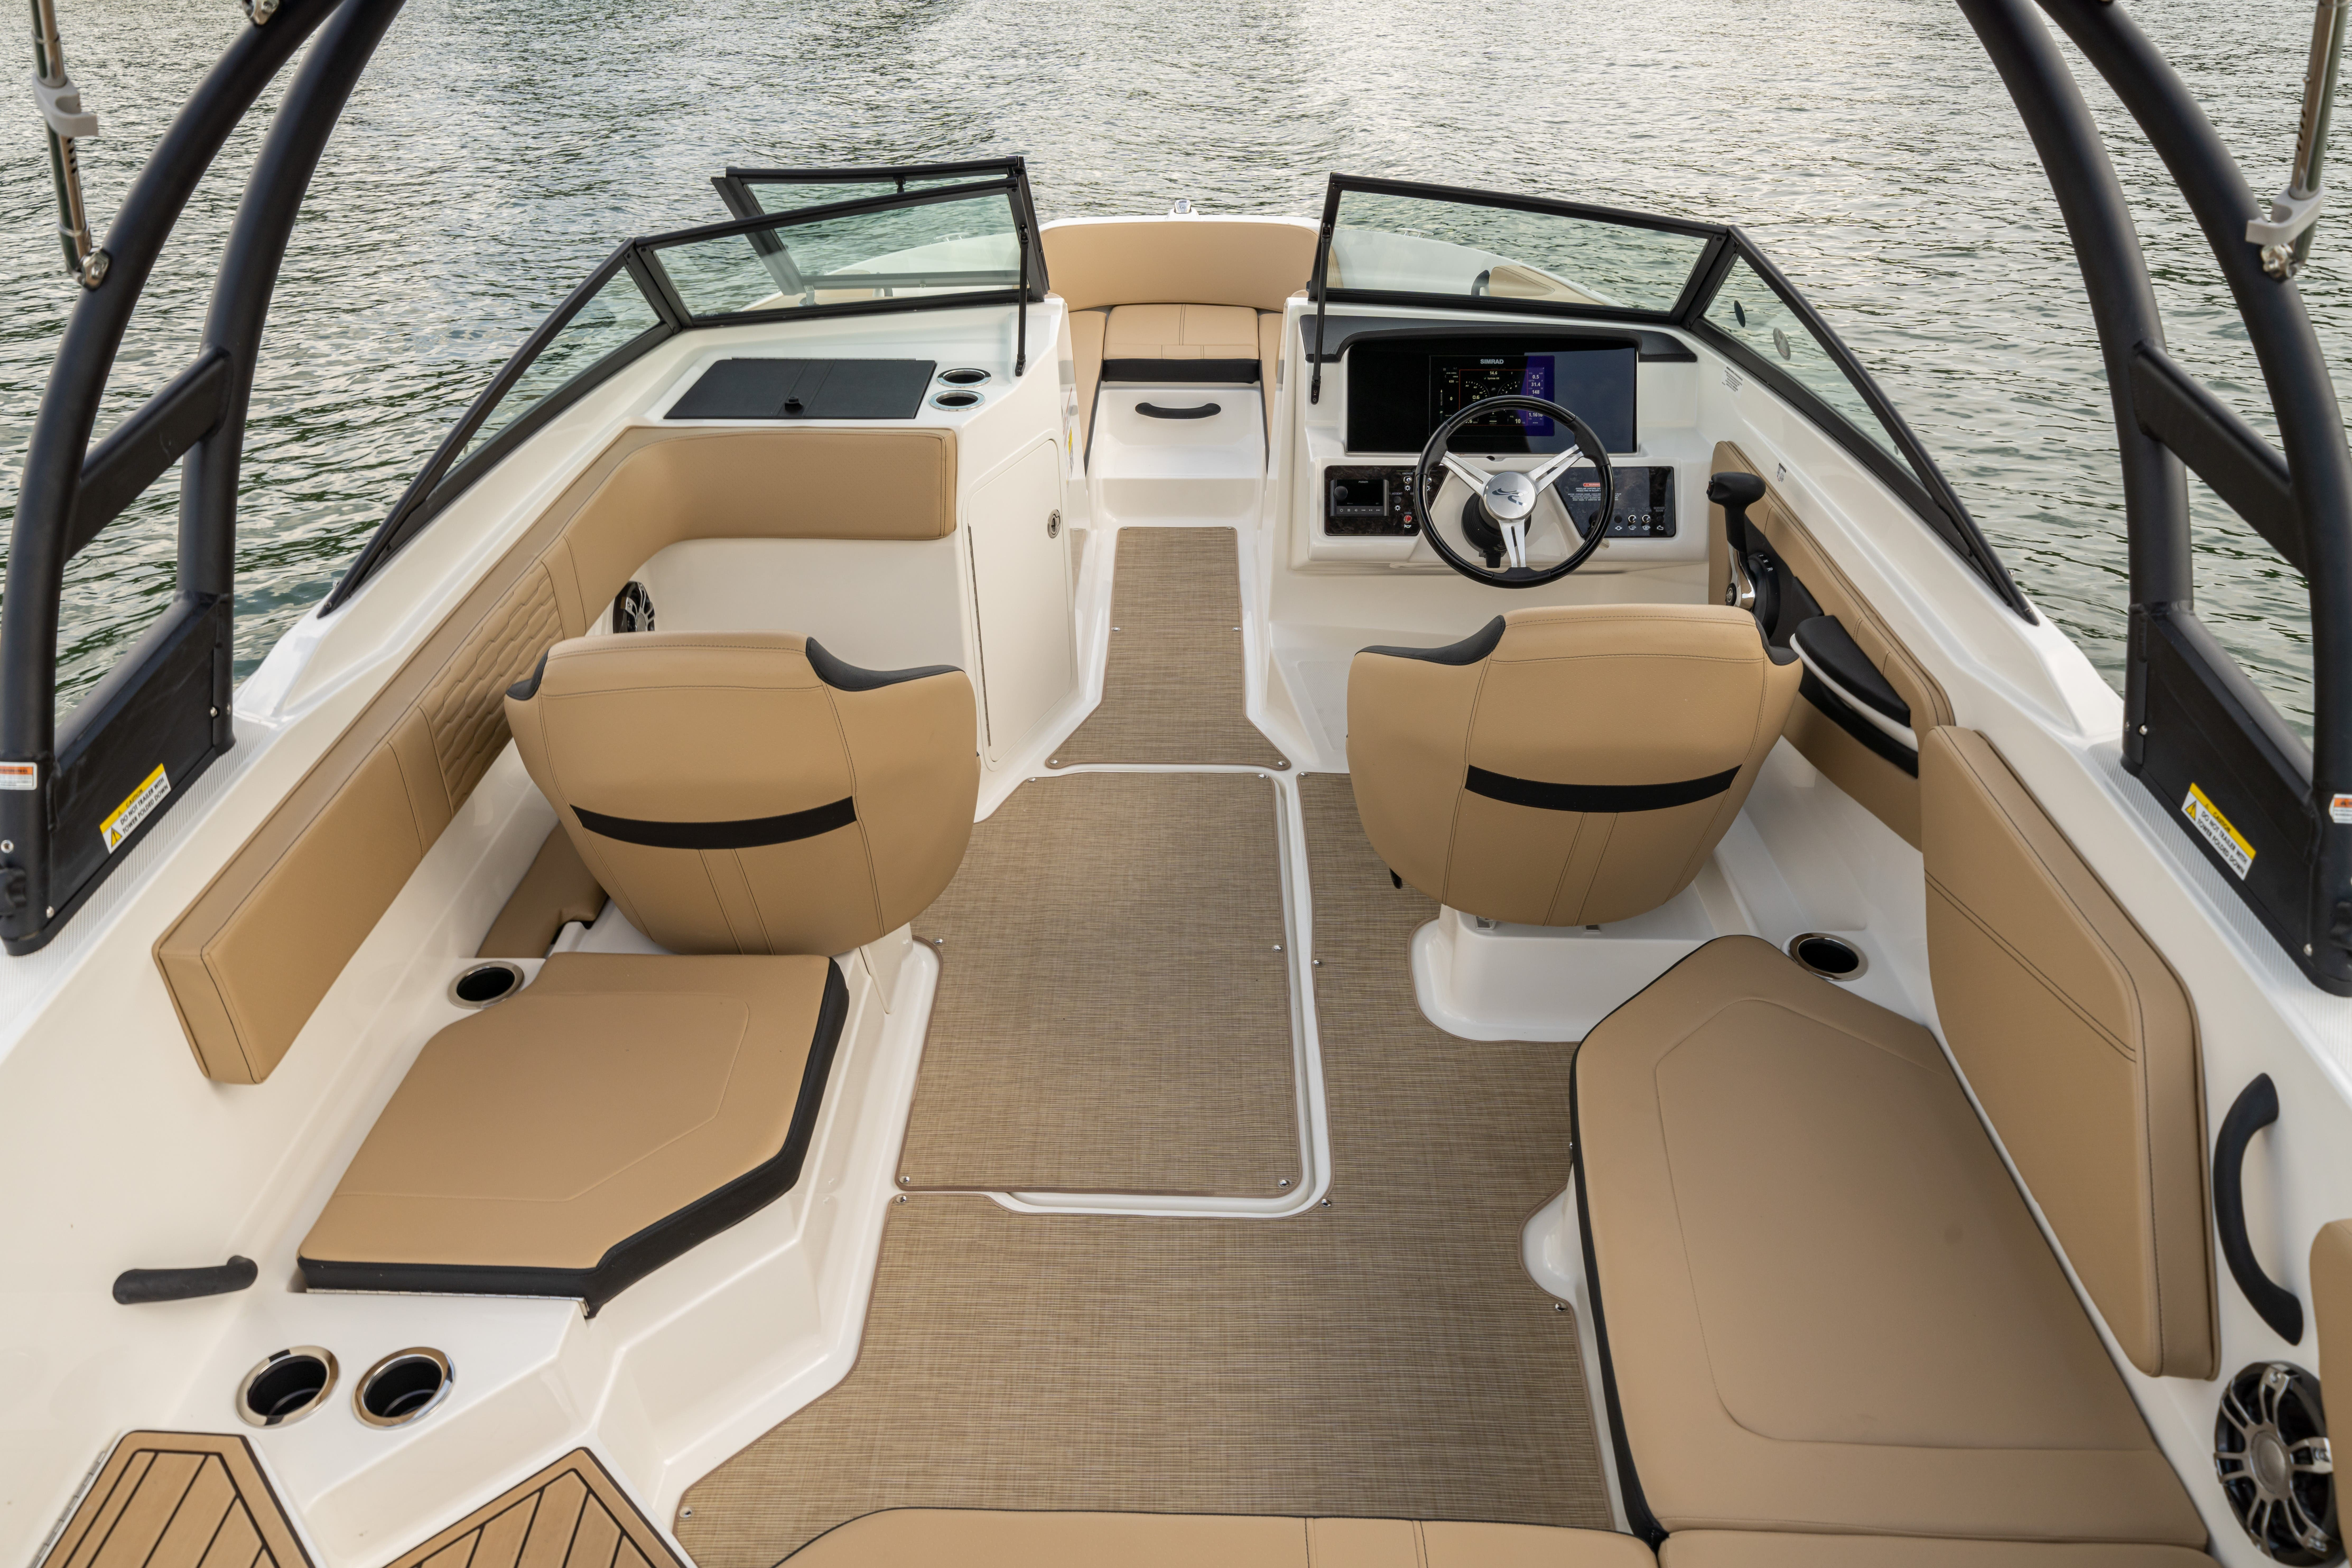 2022 Sea Ray boat for sale, model of the boat is 210spx & Image # 4 of 6